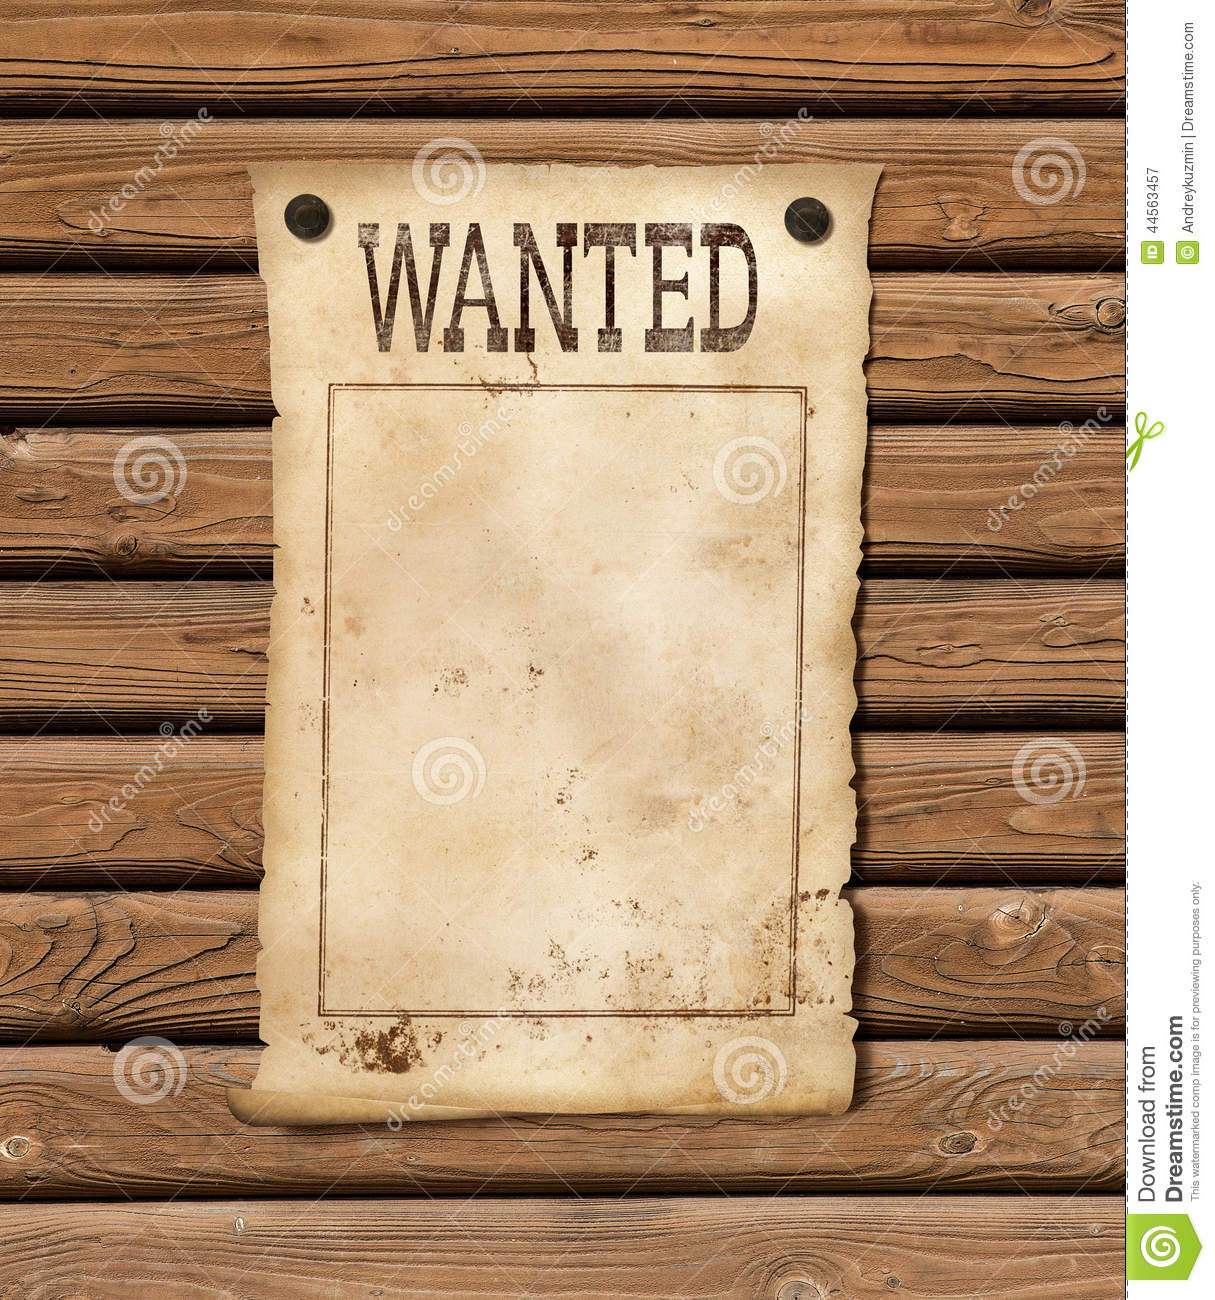 Wanted Blank Paper Sheet Stock Photo - Image: 44563457